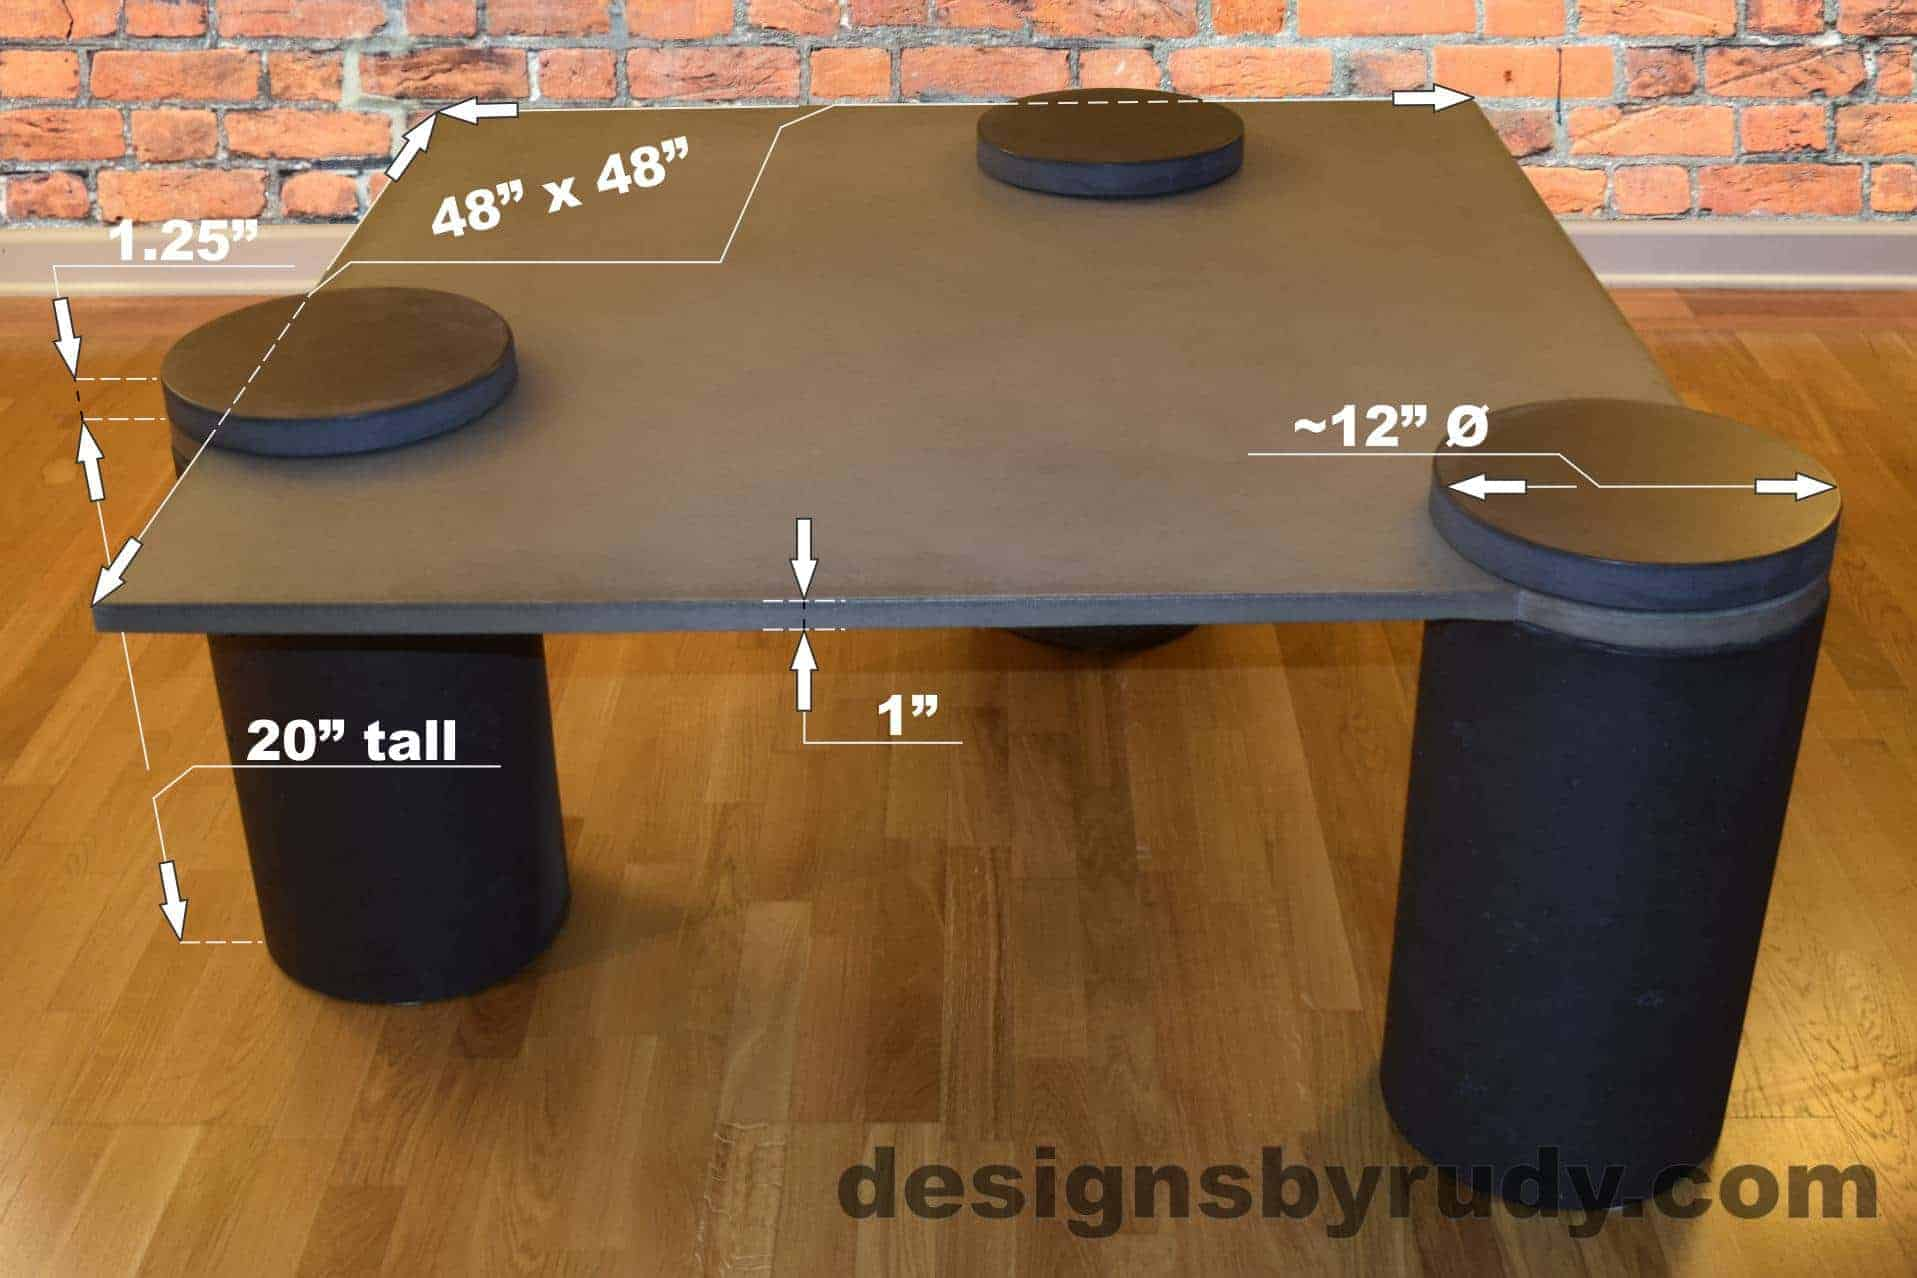 DR18 Gray Concrete Coffee Table dimensions - Pillars, Designs by Rudy L